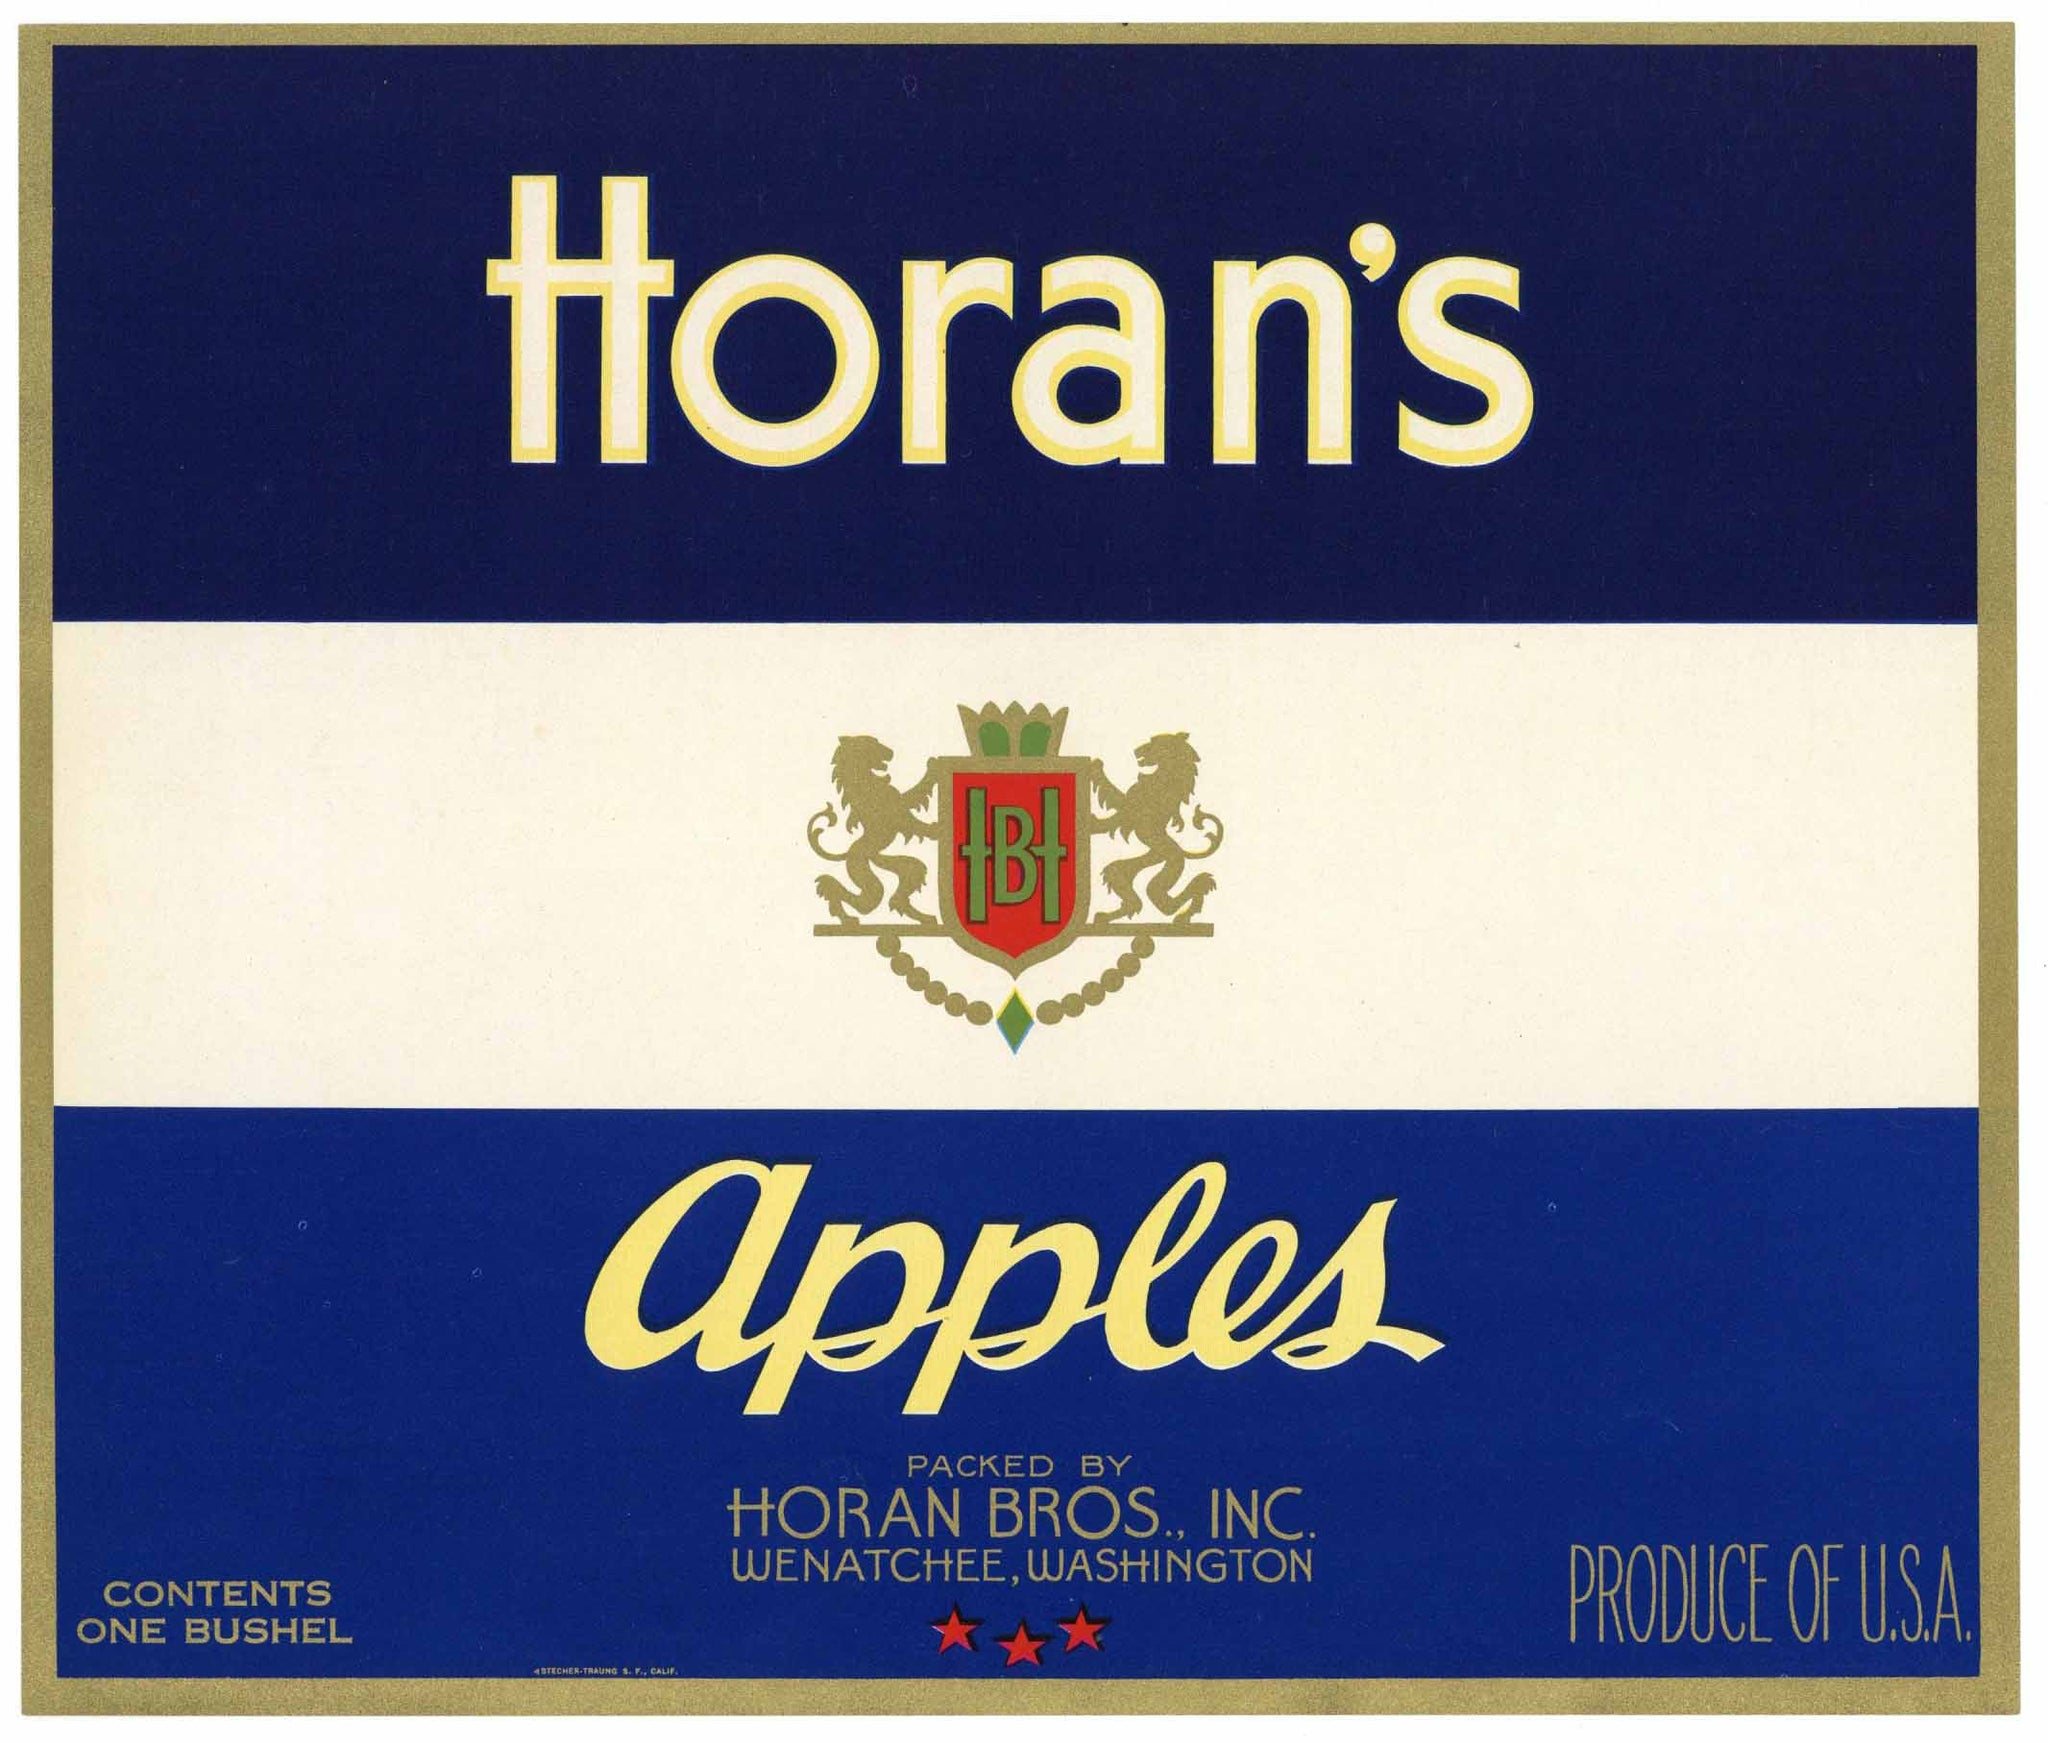 Horan's Brand Vintage Wenatchee Washington Apple Crate Label, blue